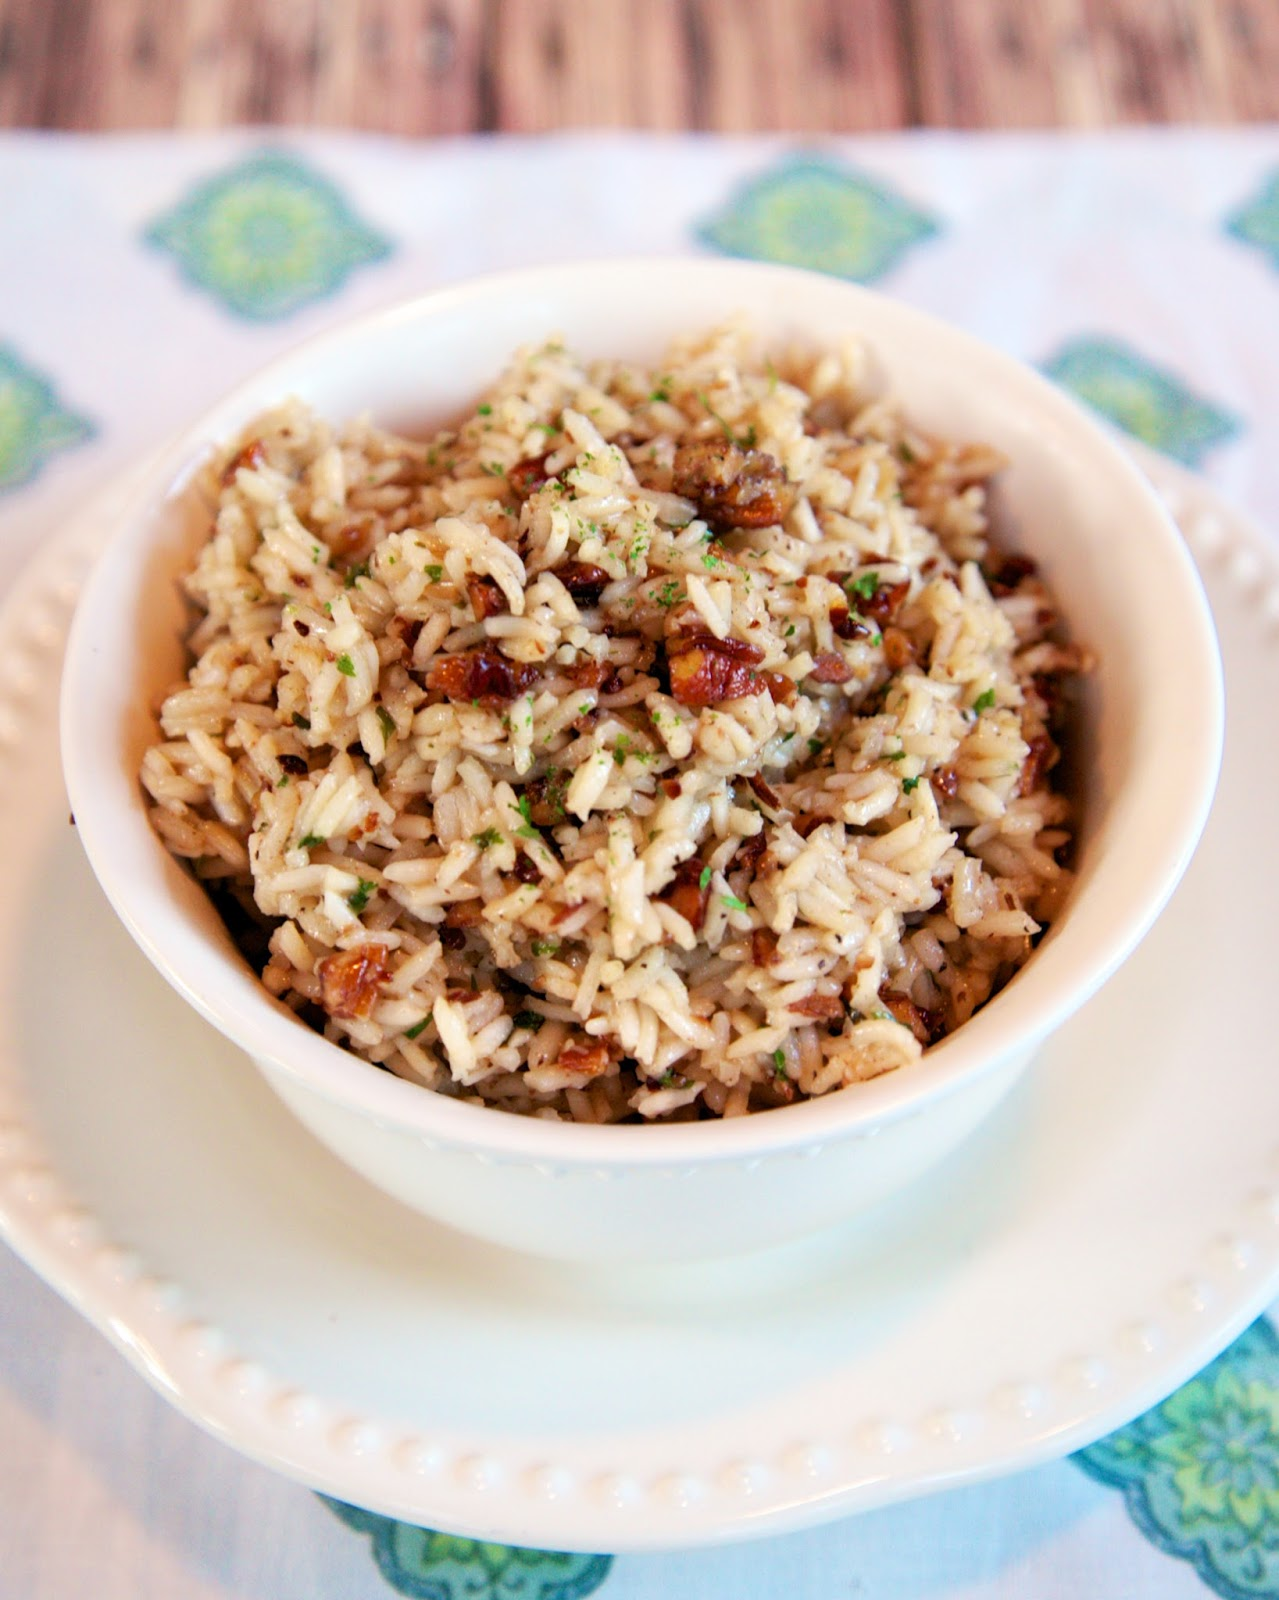 Pecan Pilaf recipe - toss the box and make this quick rice side dish - rice, pecans, chicken broth, and seasonings - tastes great and only takes 20 minutes!